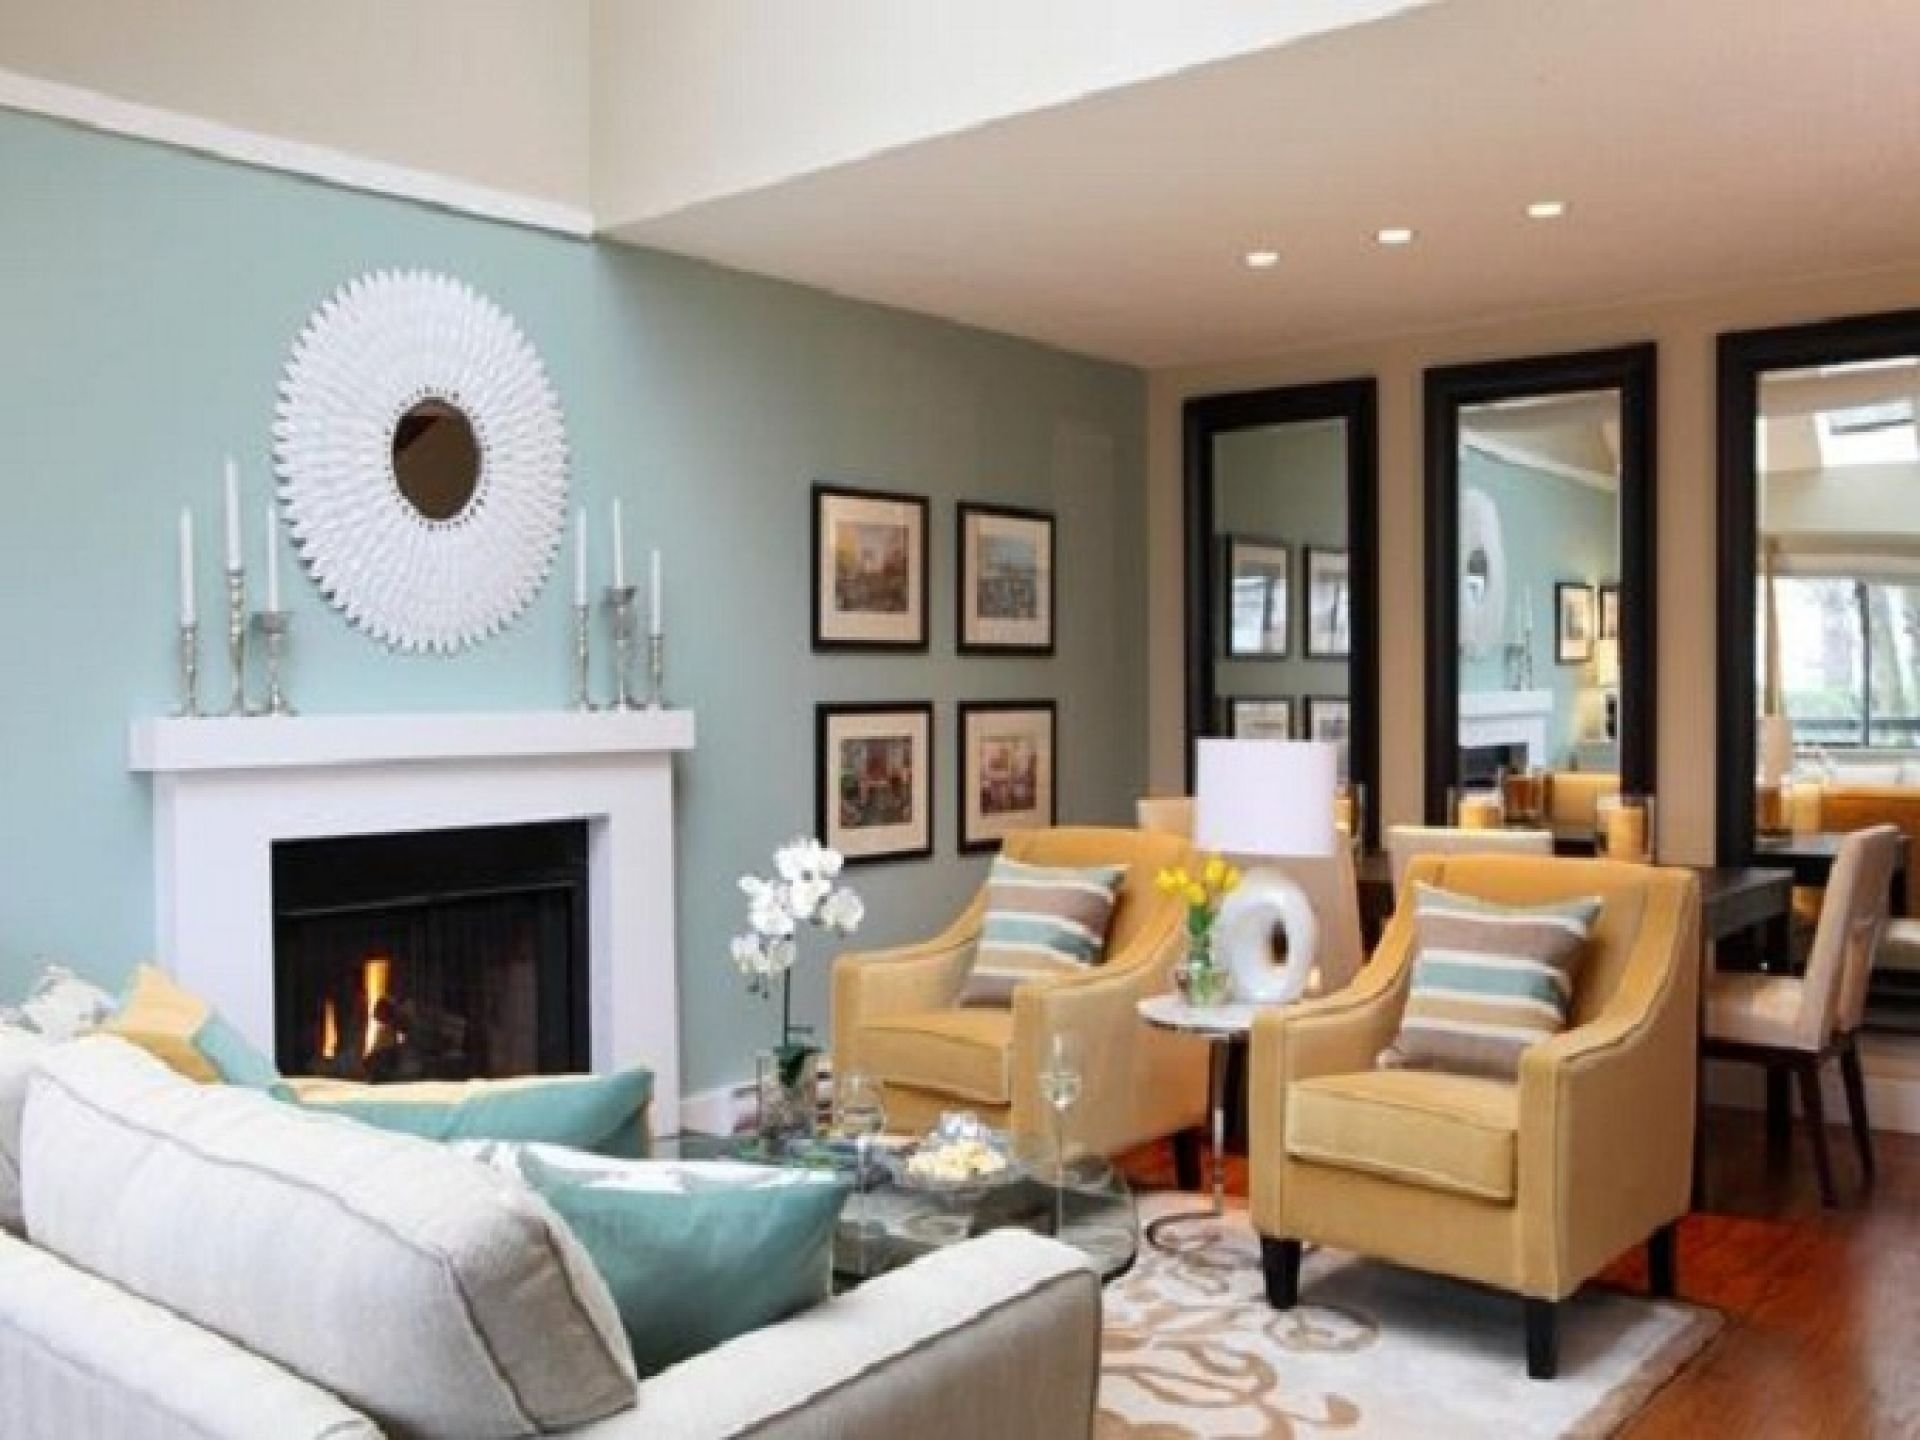 10 Lovely Small Living Room Furniture Ideas sophisticated living room color schemes ideas creative white modern 2020